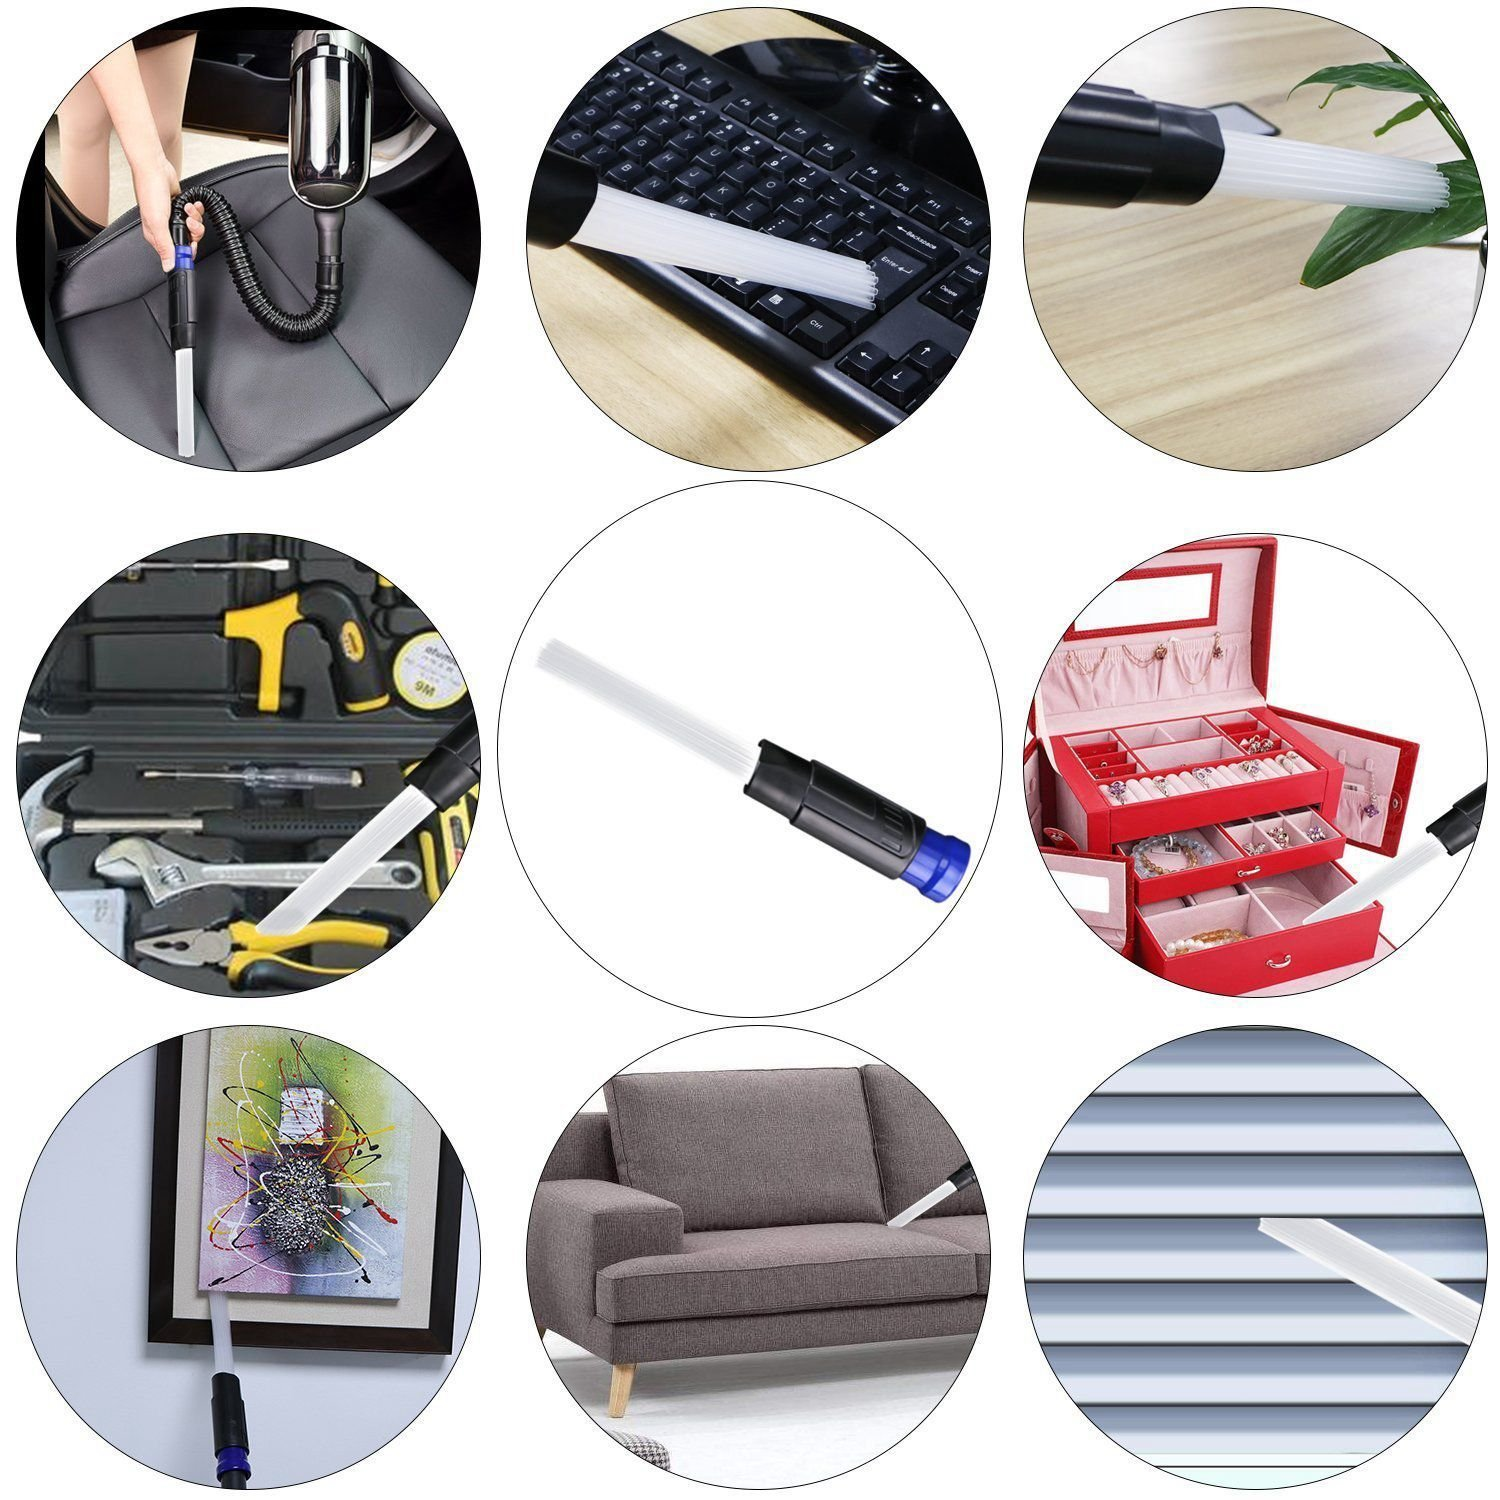 Small Suction Brush Tubes Flexible Access to Anywhere TOOGOO Vacuum Cleaner Dust Dirt Remover Universal Attachment Interface Tool Strong Suction for Corners Drawers Pets